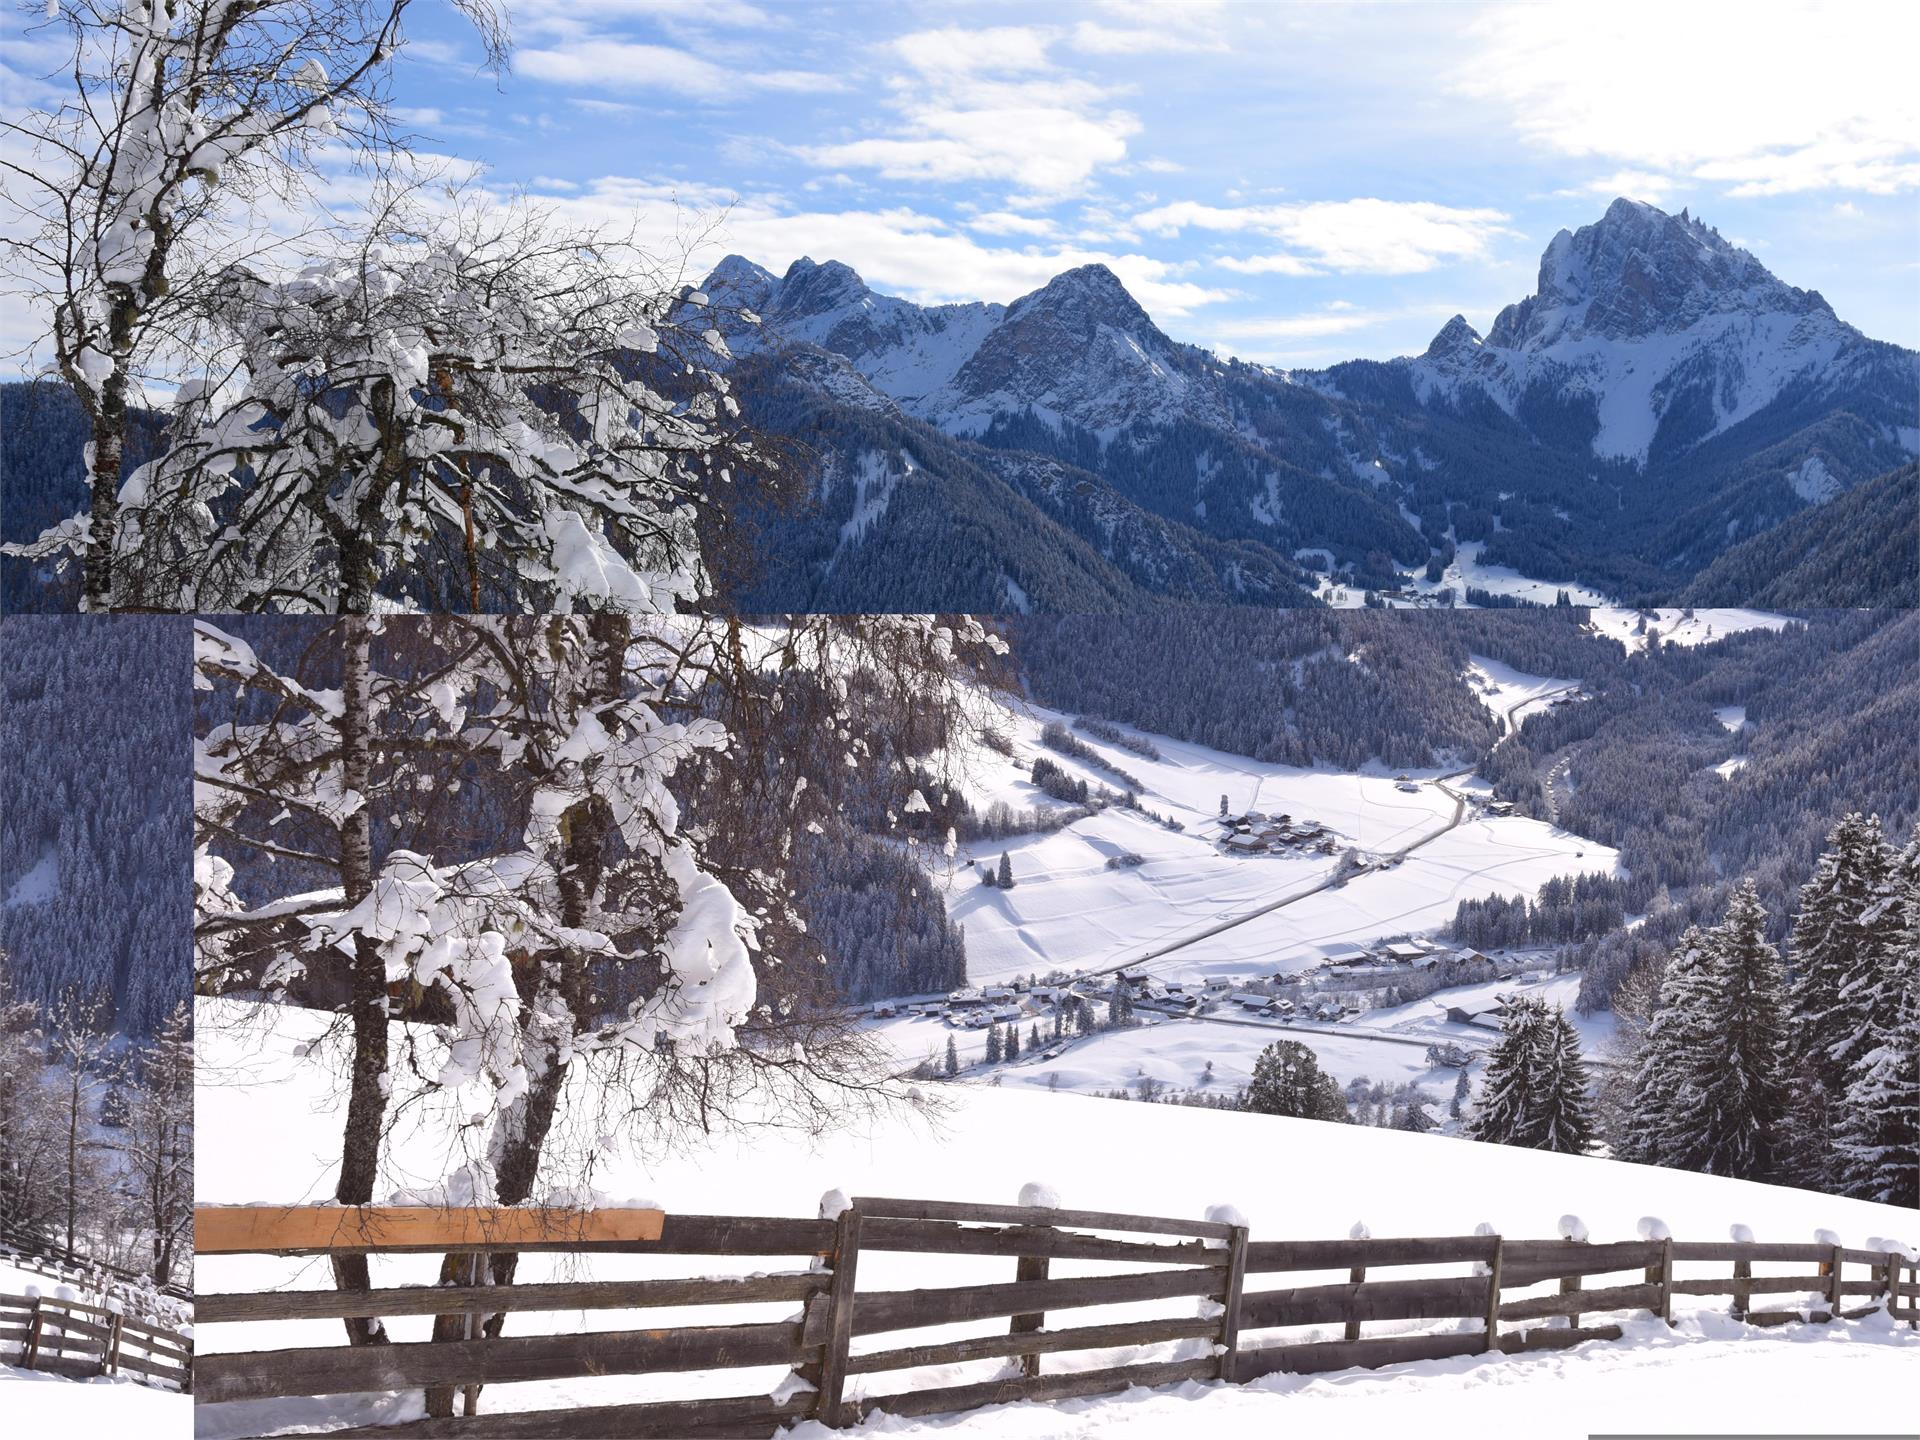 Winter hiking tour - Monte di Braies/ Pragser Berg